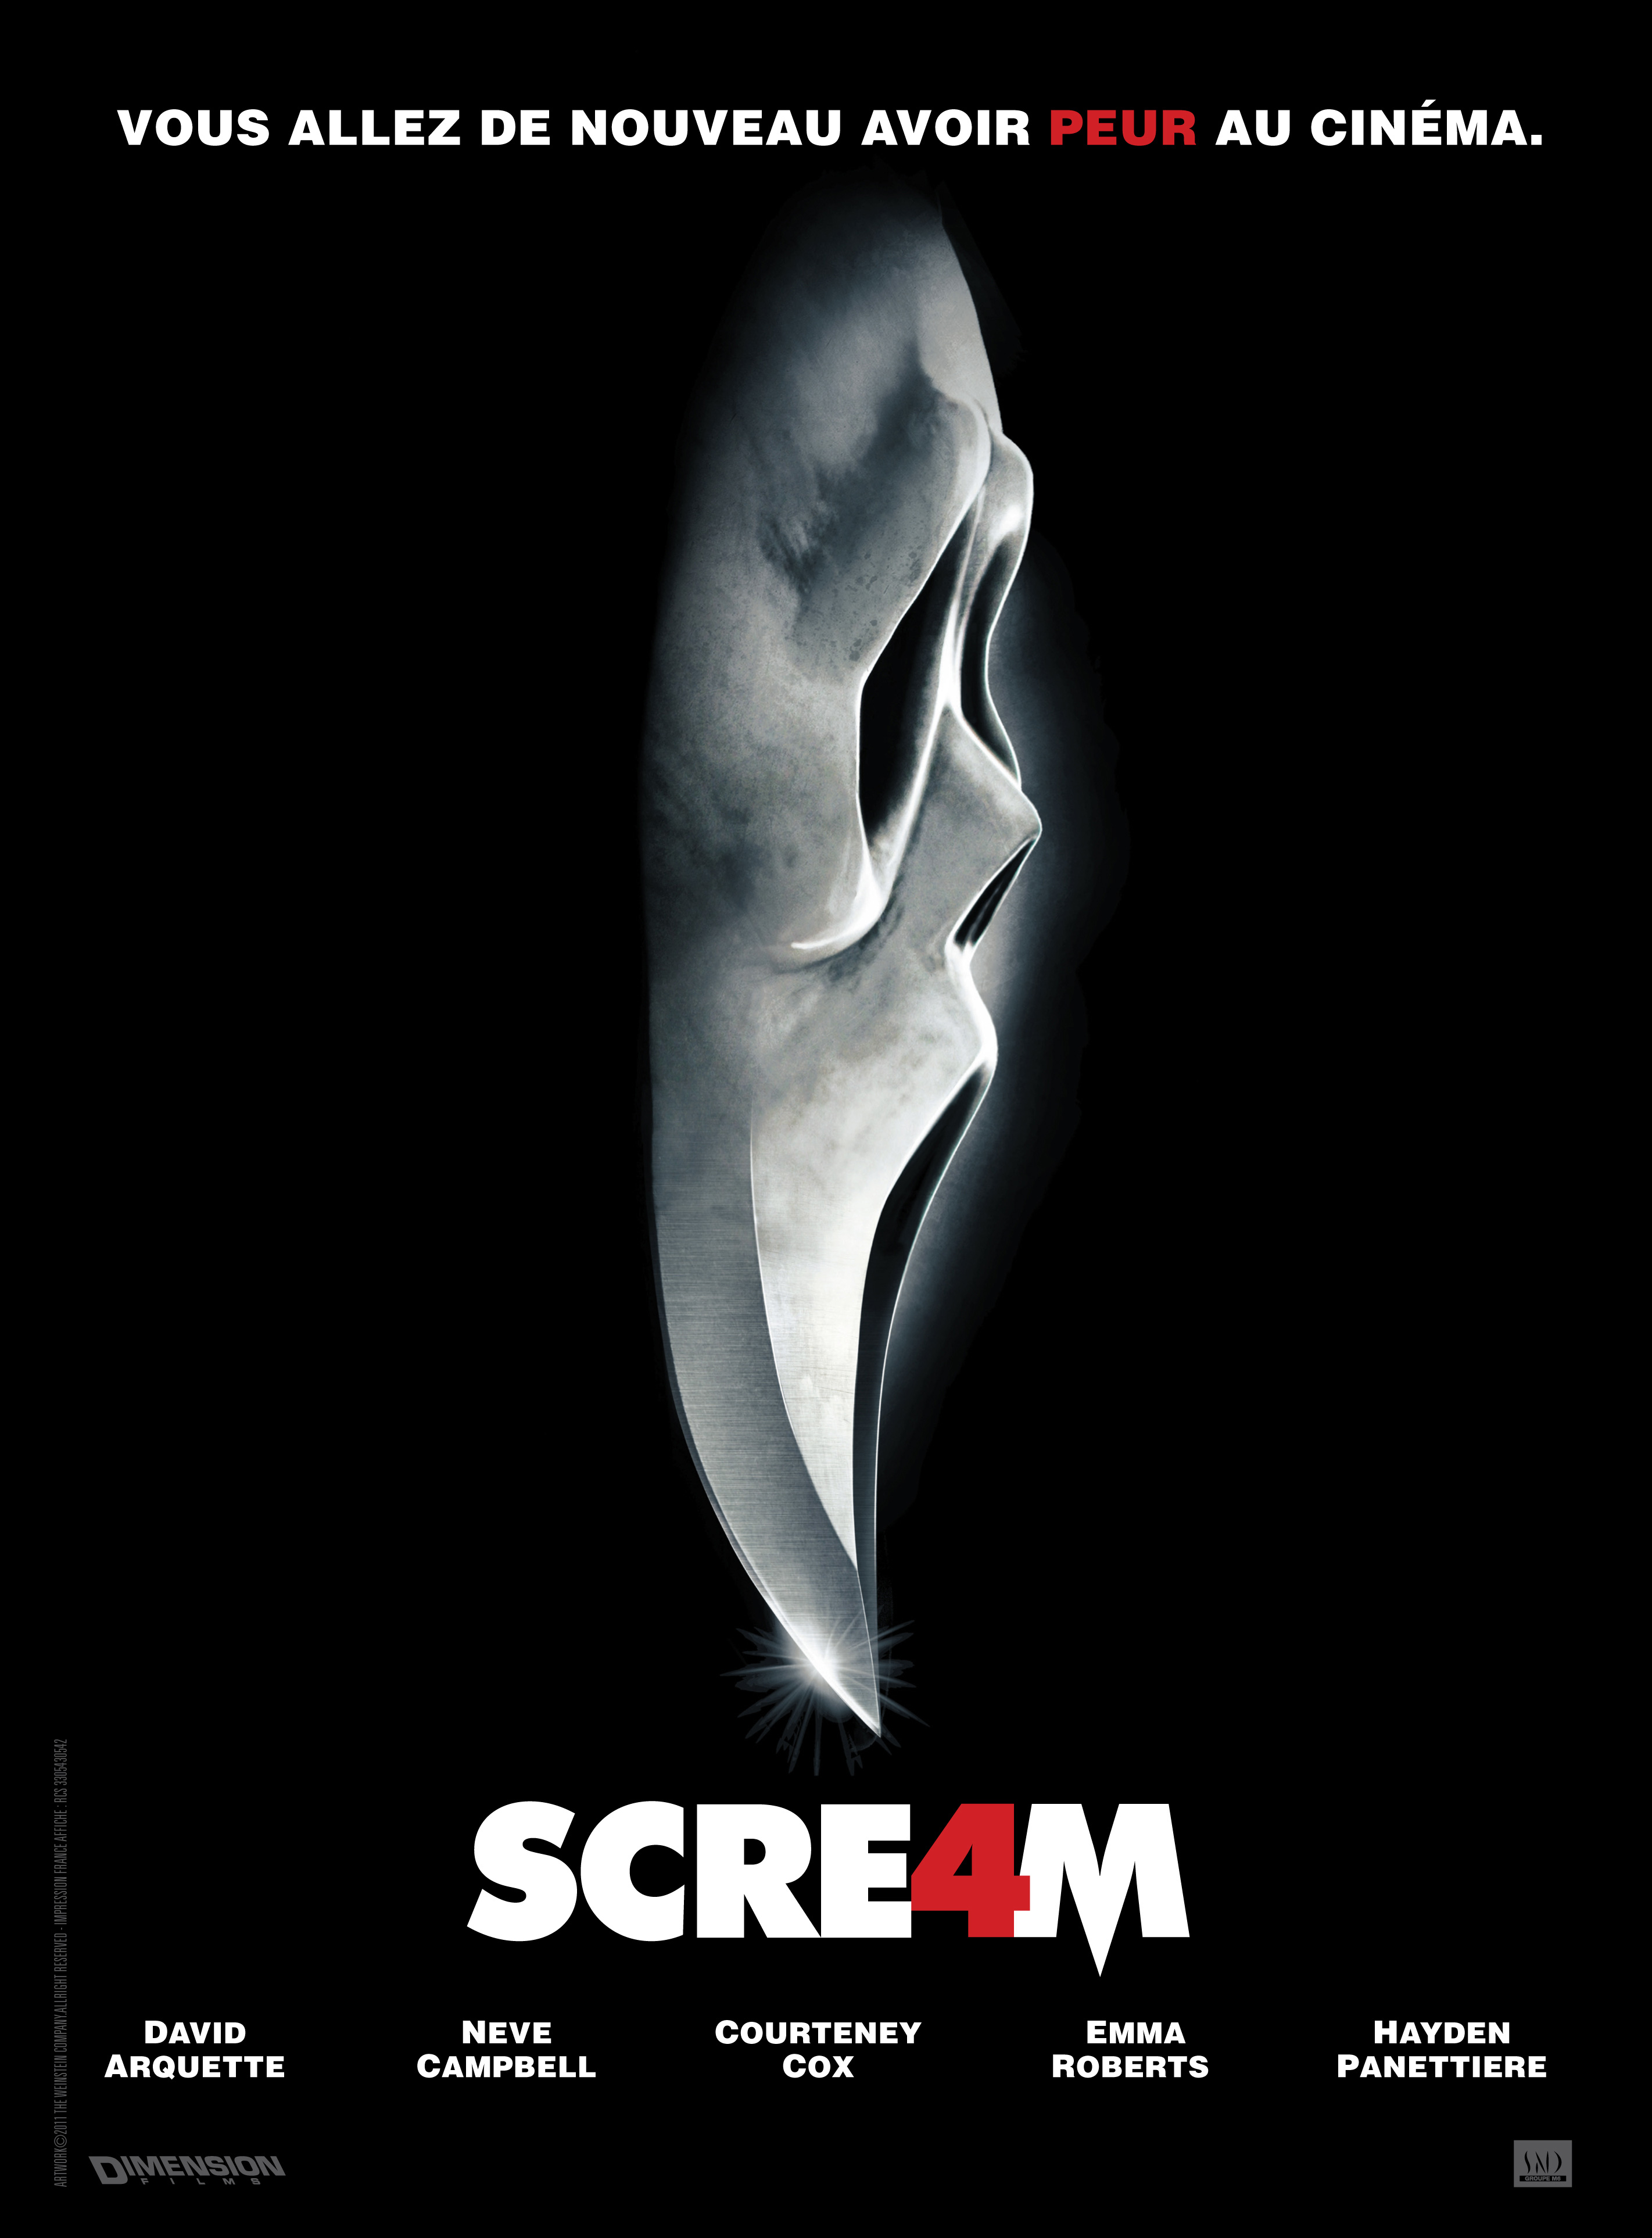 affiche du film Scream 4